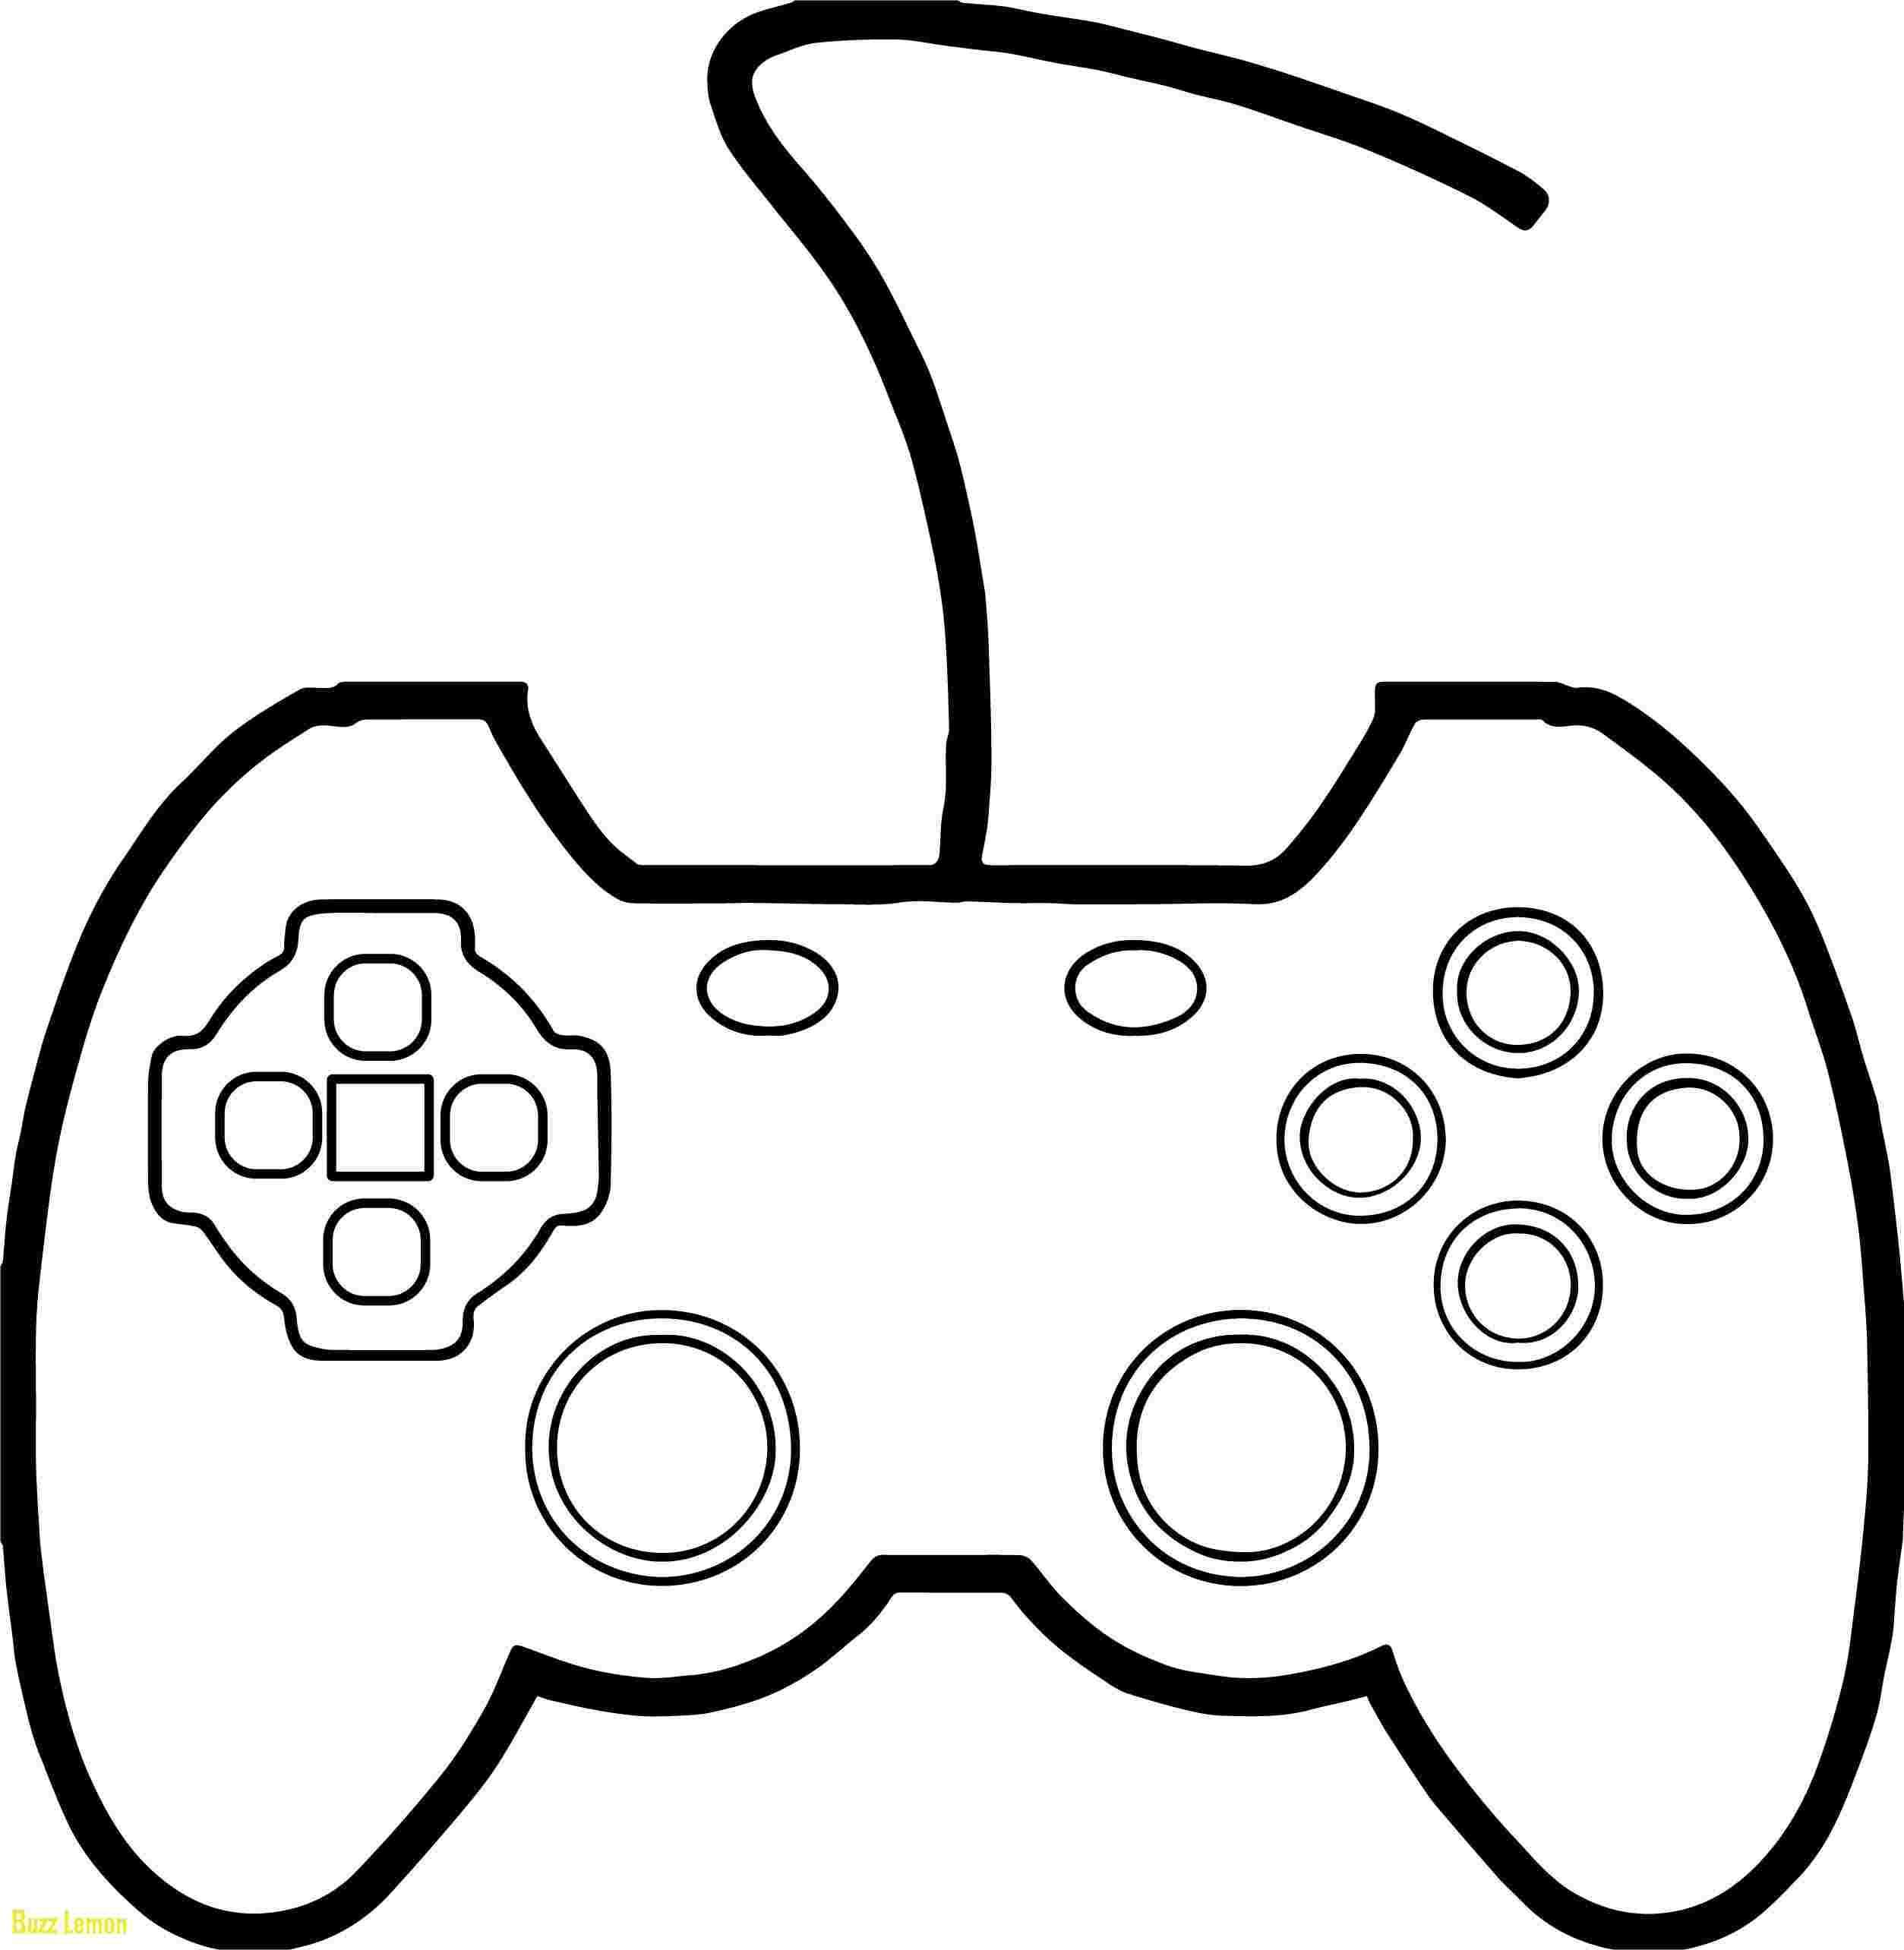 10 Coloring Page Xbox Controller Coloring Pages Free Online Coloring Moon Coloring Pages